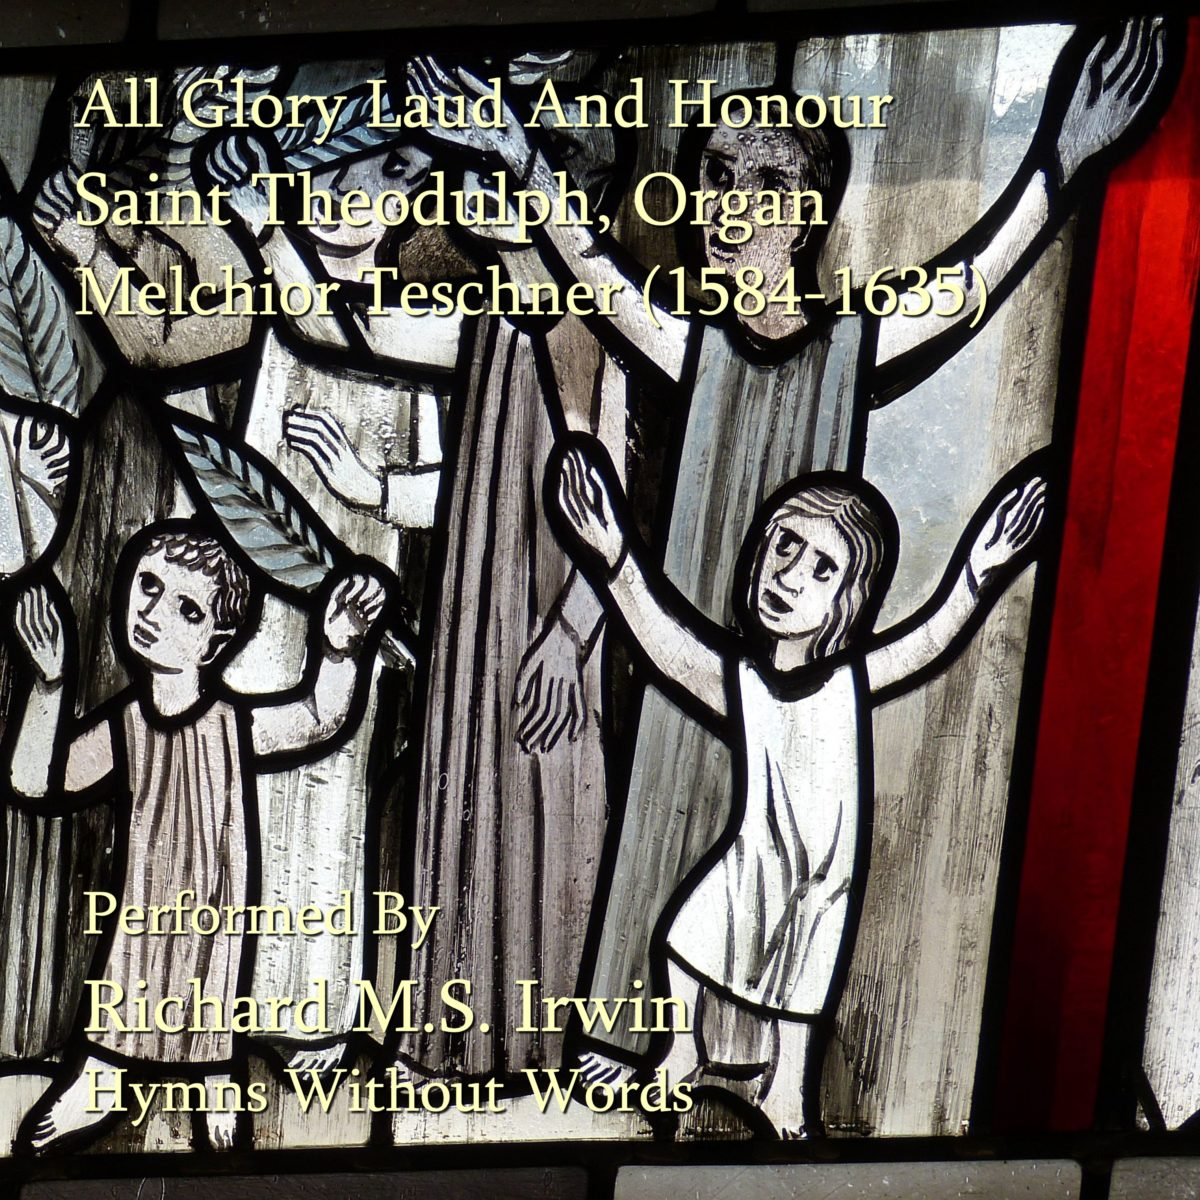 All Glory Laud And Honour (Saint Theodulph, Organ, 5 Verses)